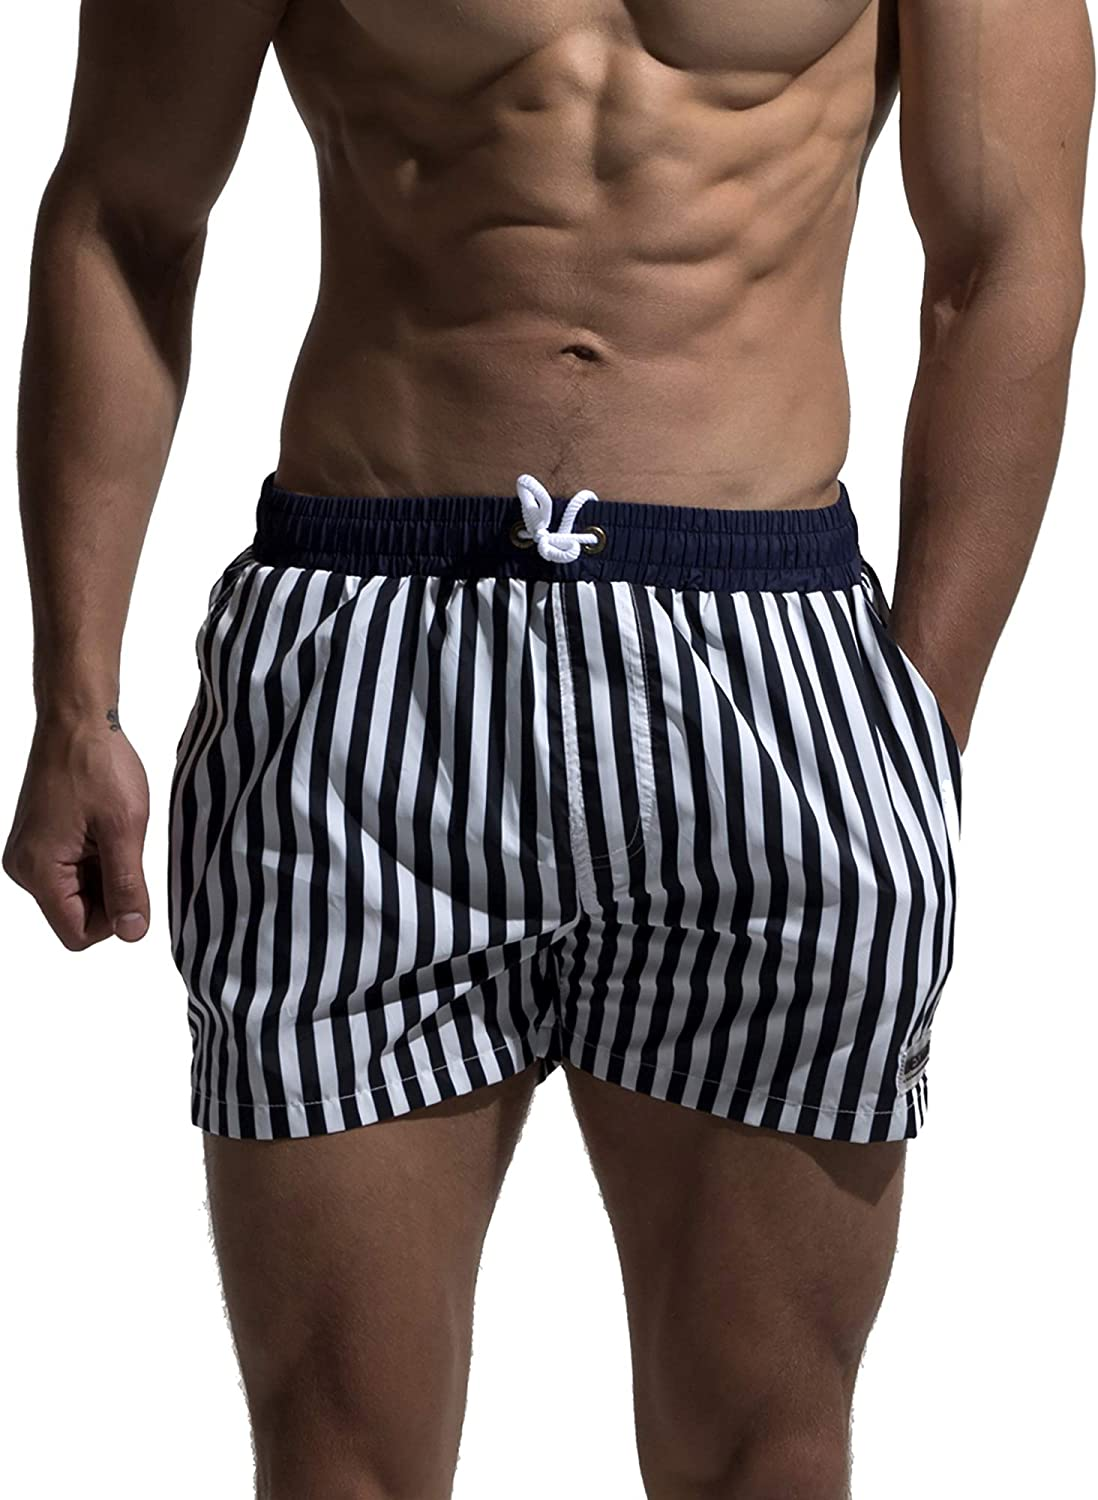 DESMIIT Men's Classical Board Shorts Navy Blue Striped Shorts Trunks Also for Gym